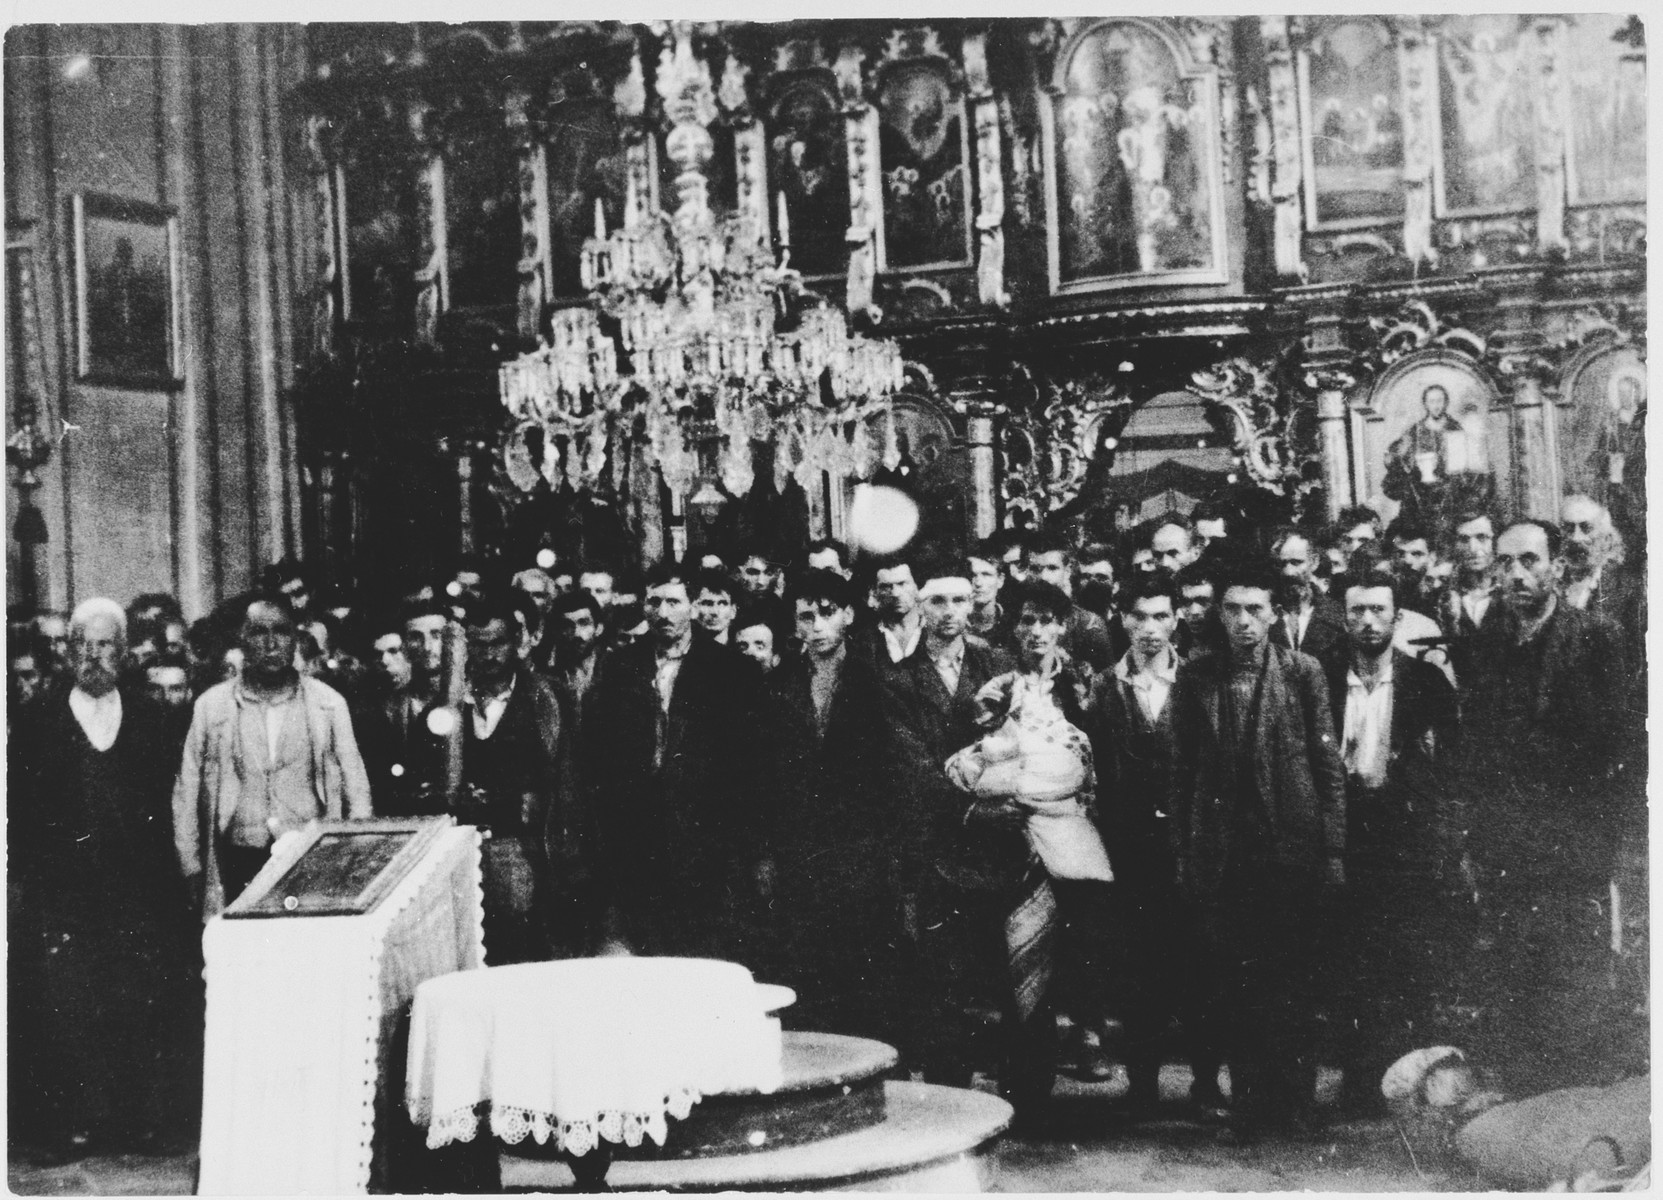 Serbian civilians who are being forced to convert to Catholicism by the Ustasa regime stand in front of a baptismal font in a church in Glina.    More than 1200 Serbs from Glina were forced to convert.  They were later slaughtered in the same church where they were converted.